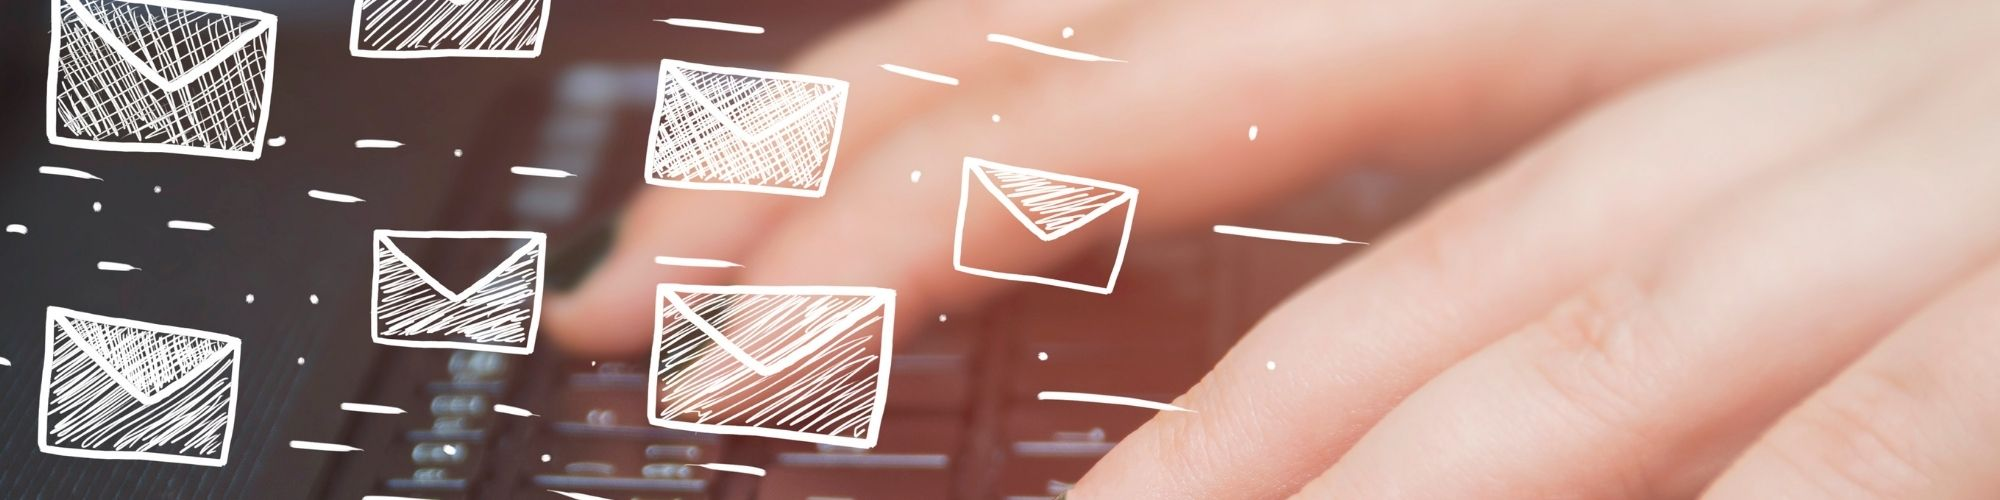 Why Bother with an Email Re-Engagement Campaign?